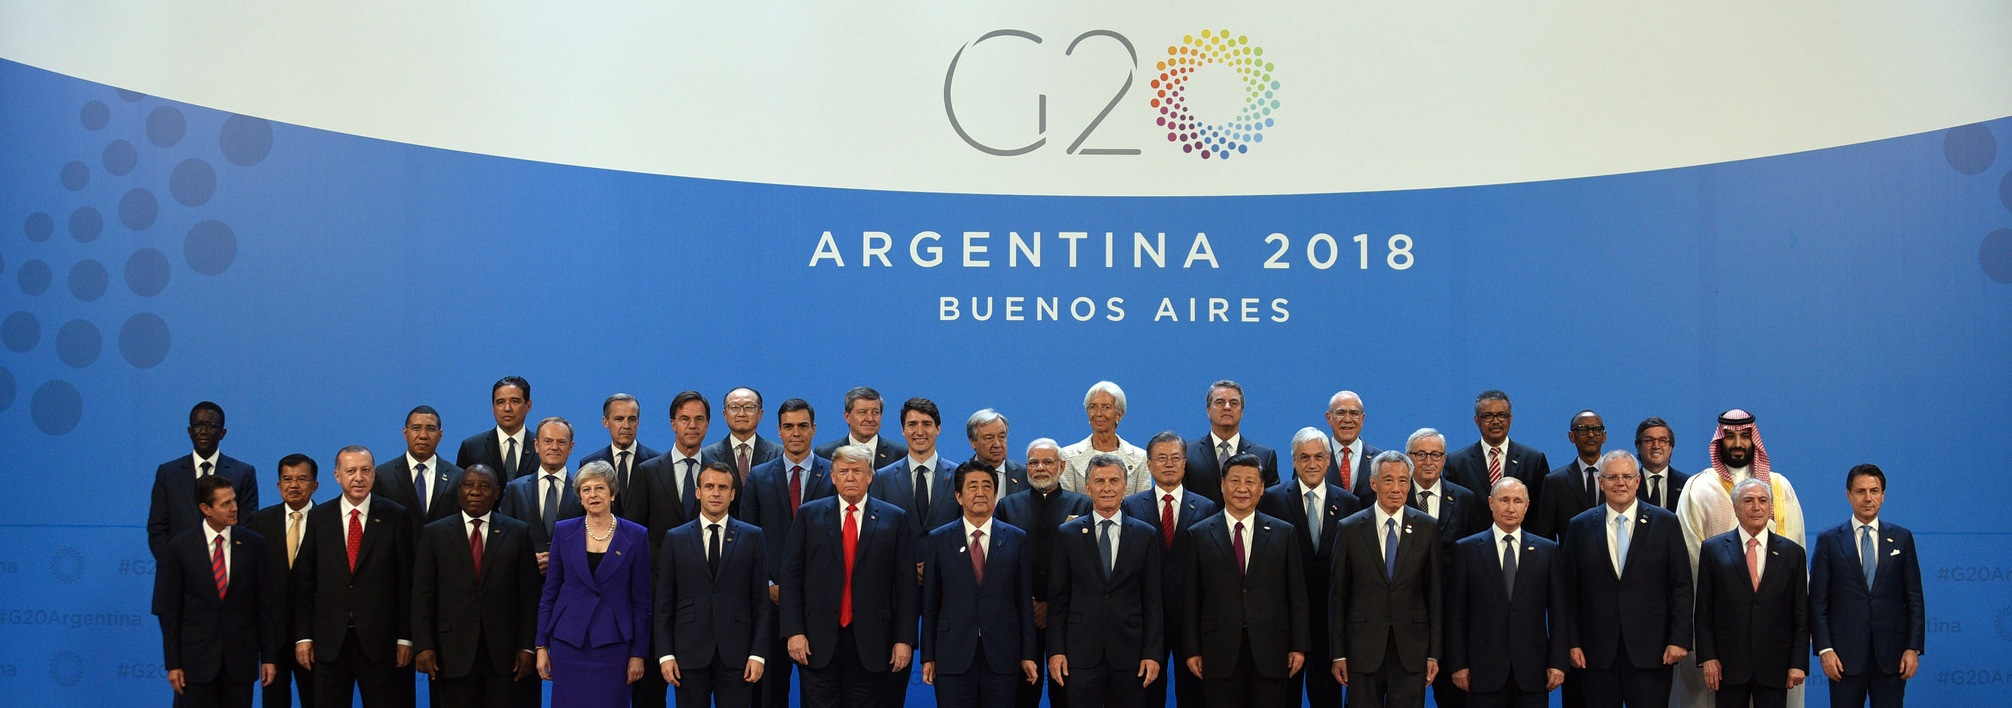 G20 Argentina 2018 Leaders' declaration - Building consensus for fair and sustainable development